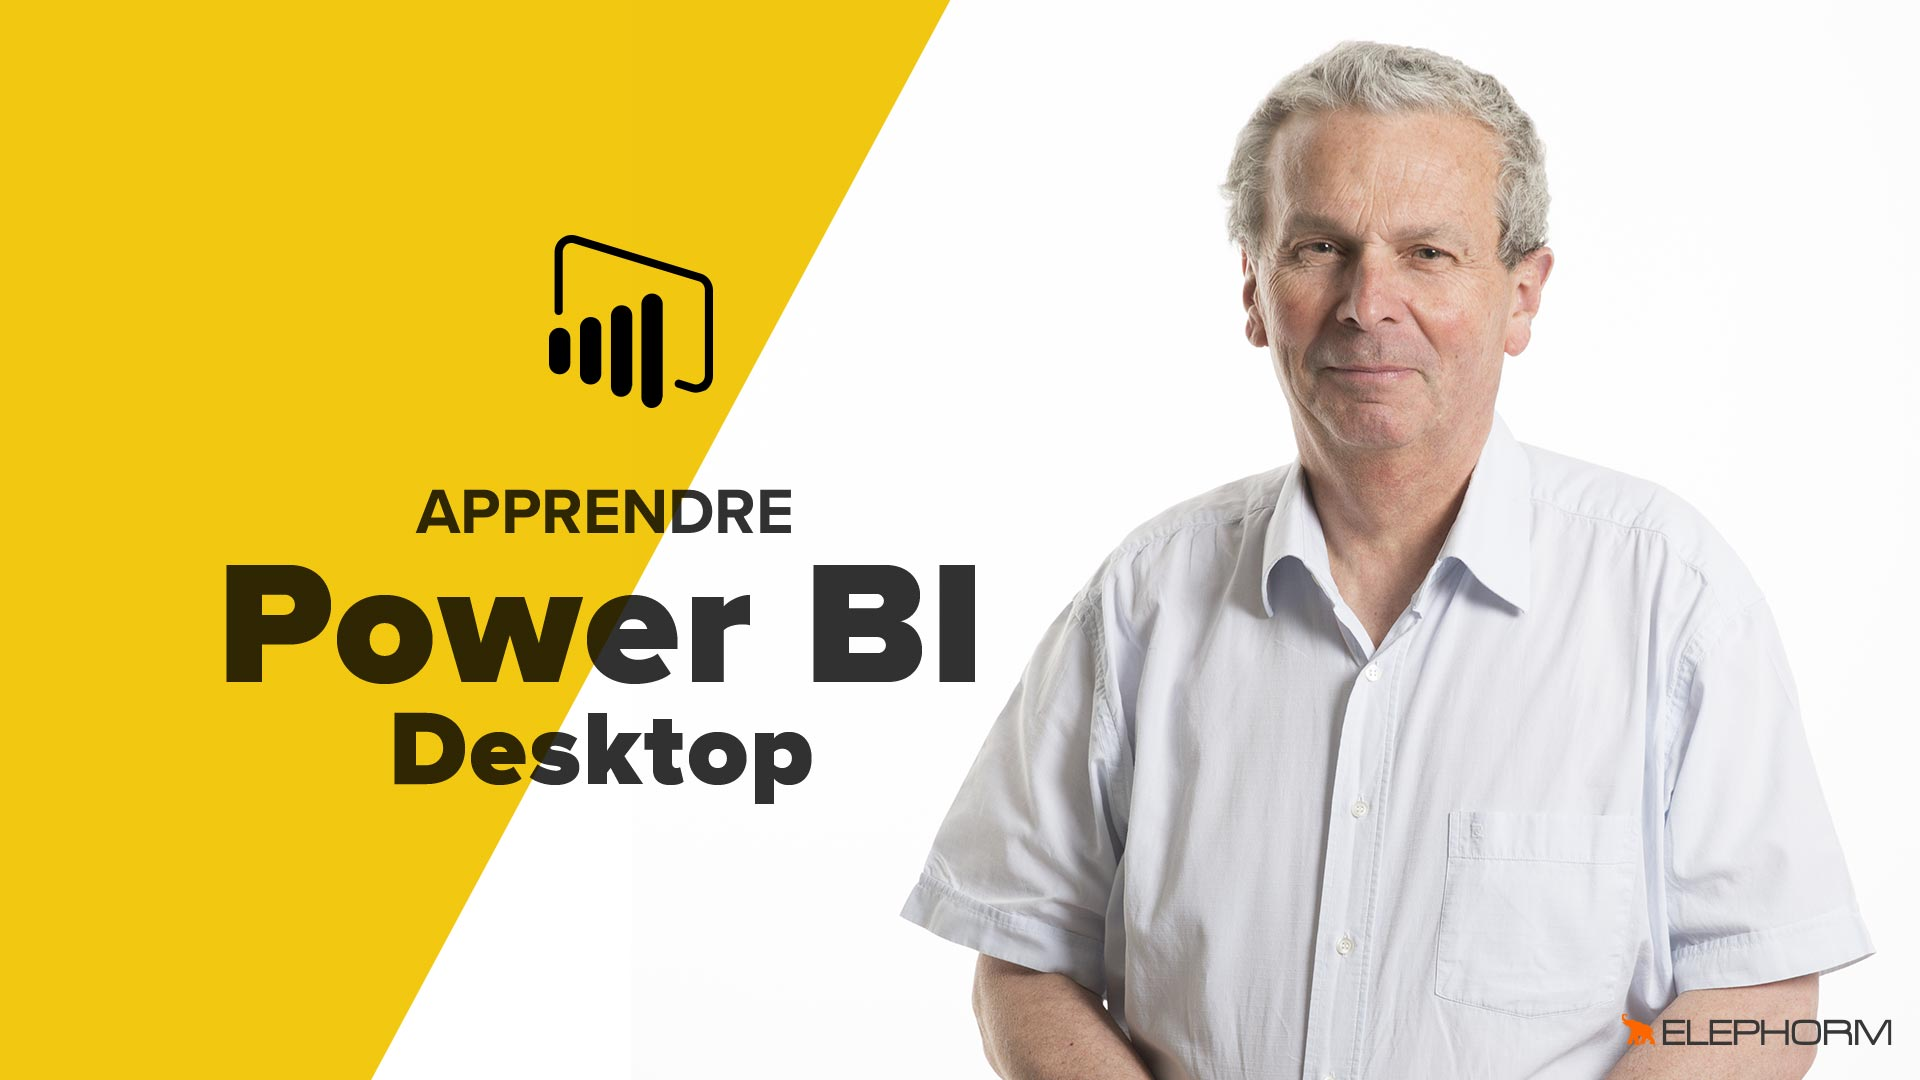 Apprendre Power BI Desktop